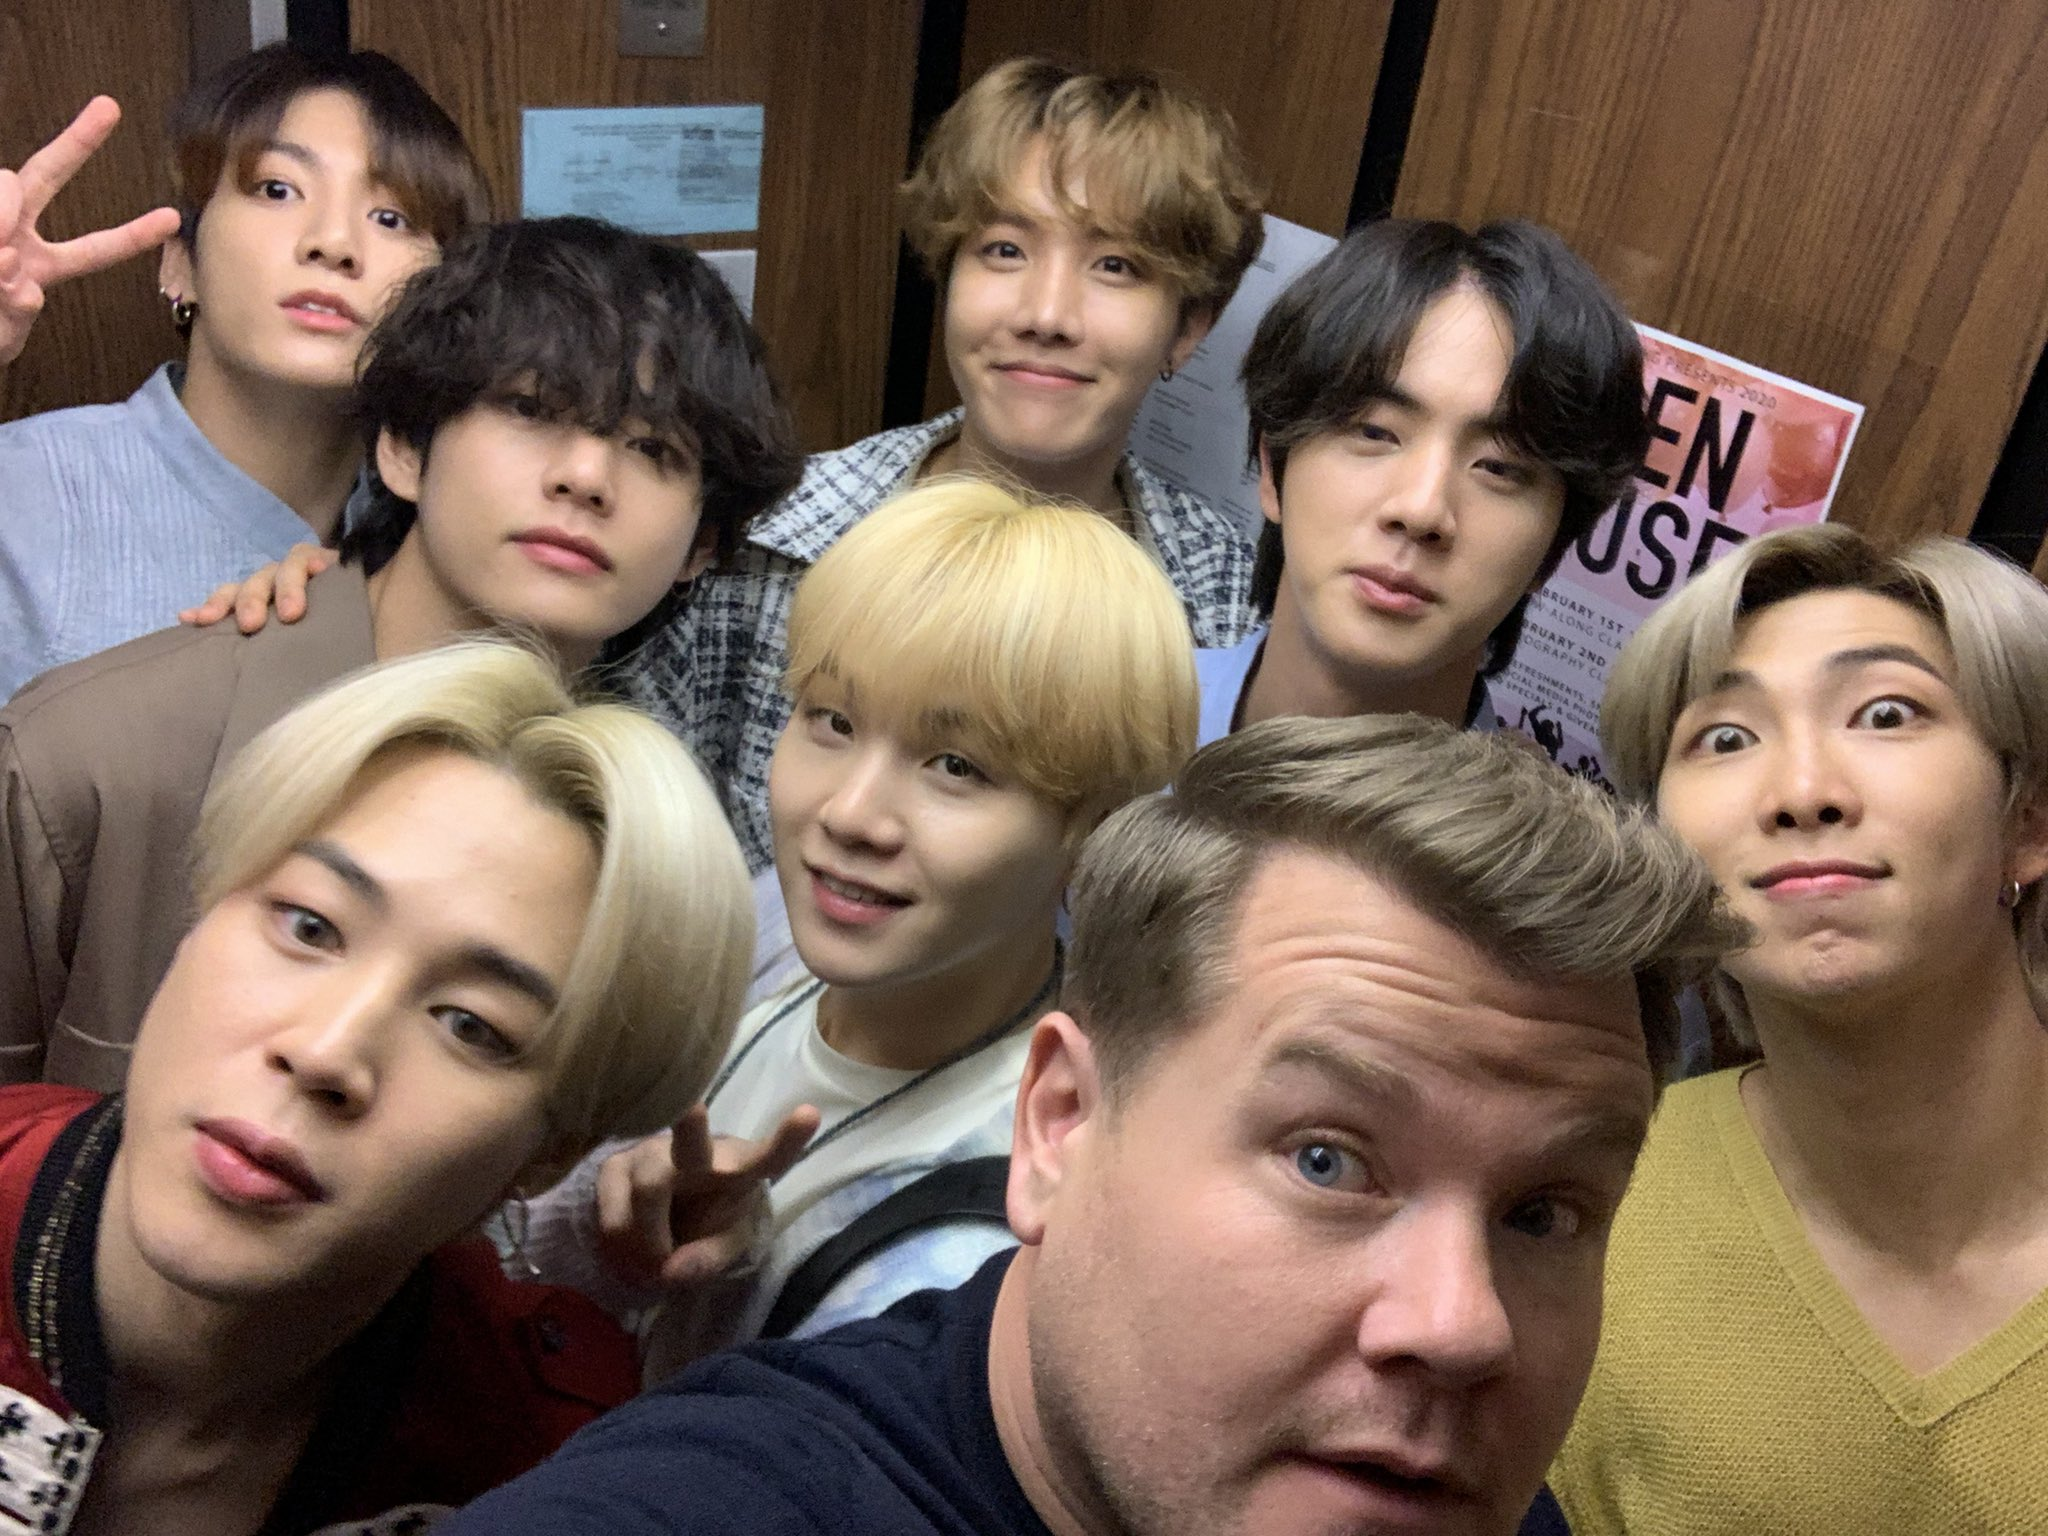 BTS Menampilkan Black Swan Secara Live Pertama Kali di TV Show Terkenal Amerika Serikat The Late Late Show with James Corden © The Late Late Show with James Corden/CBS